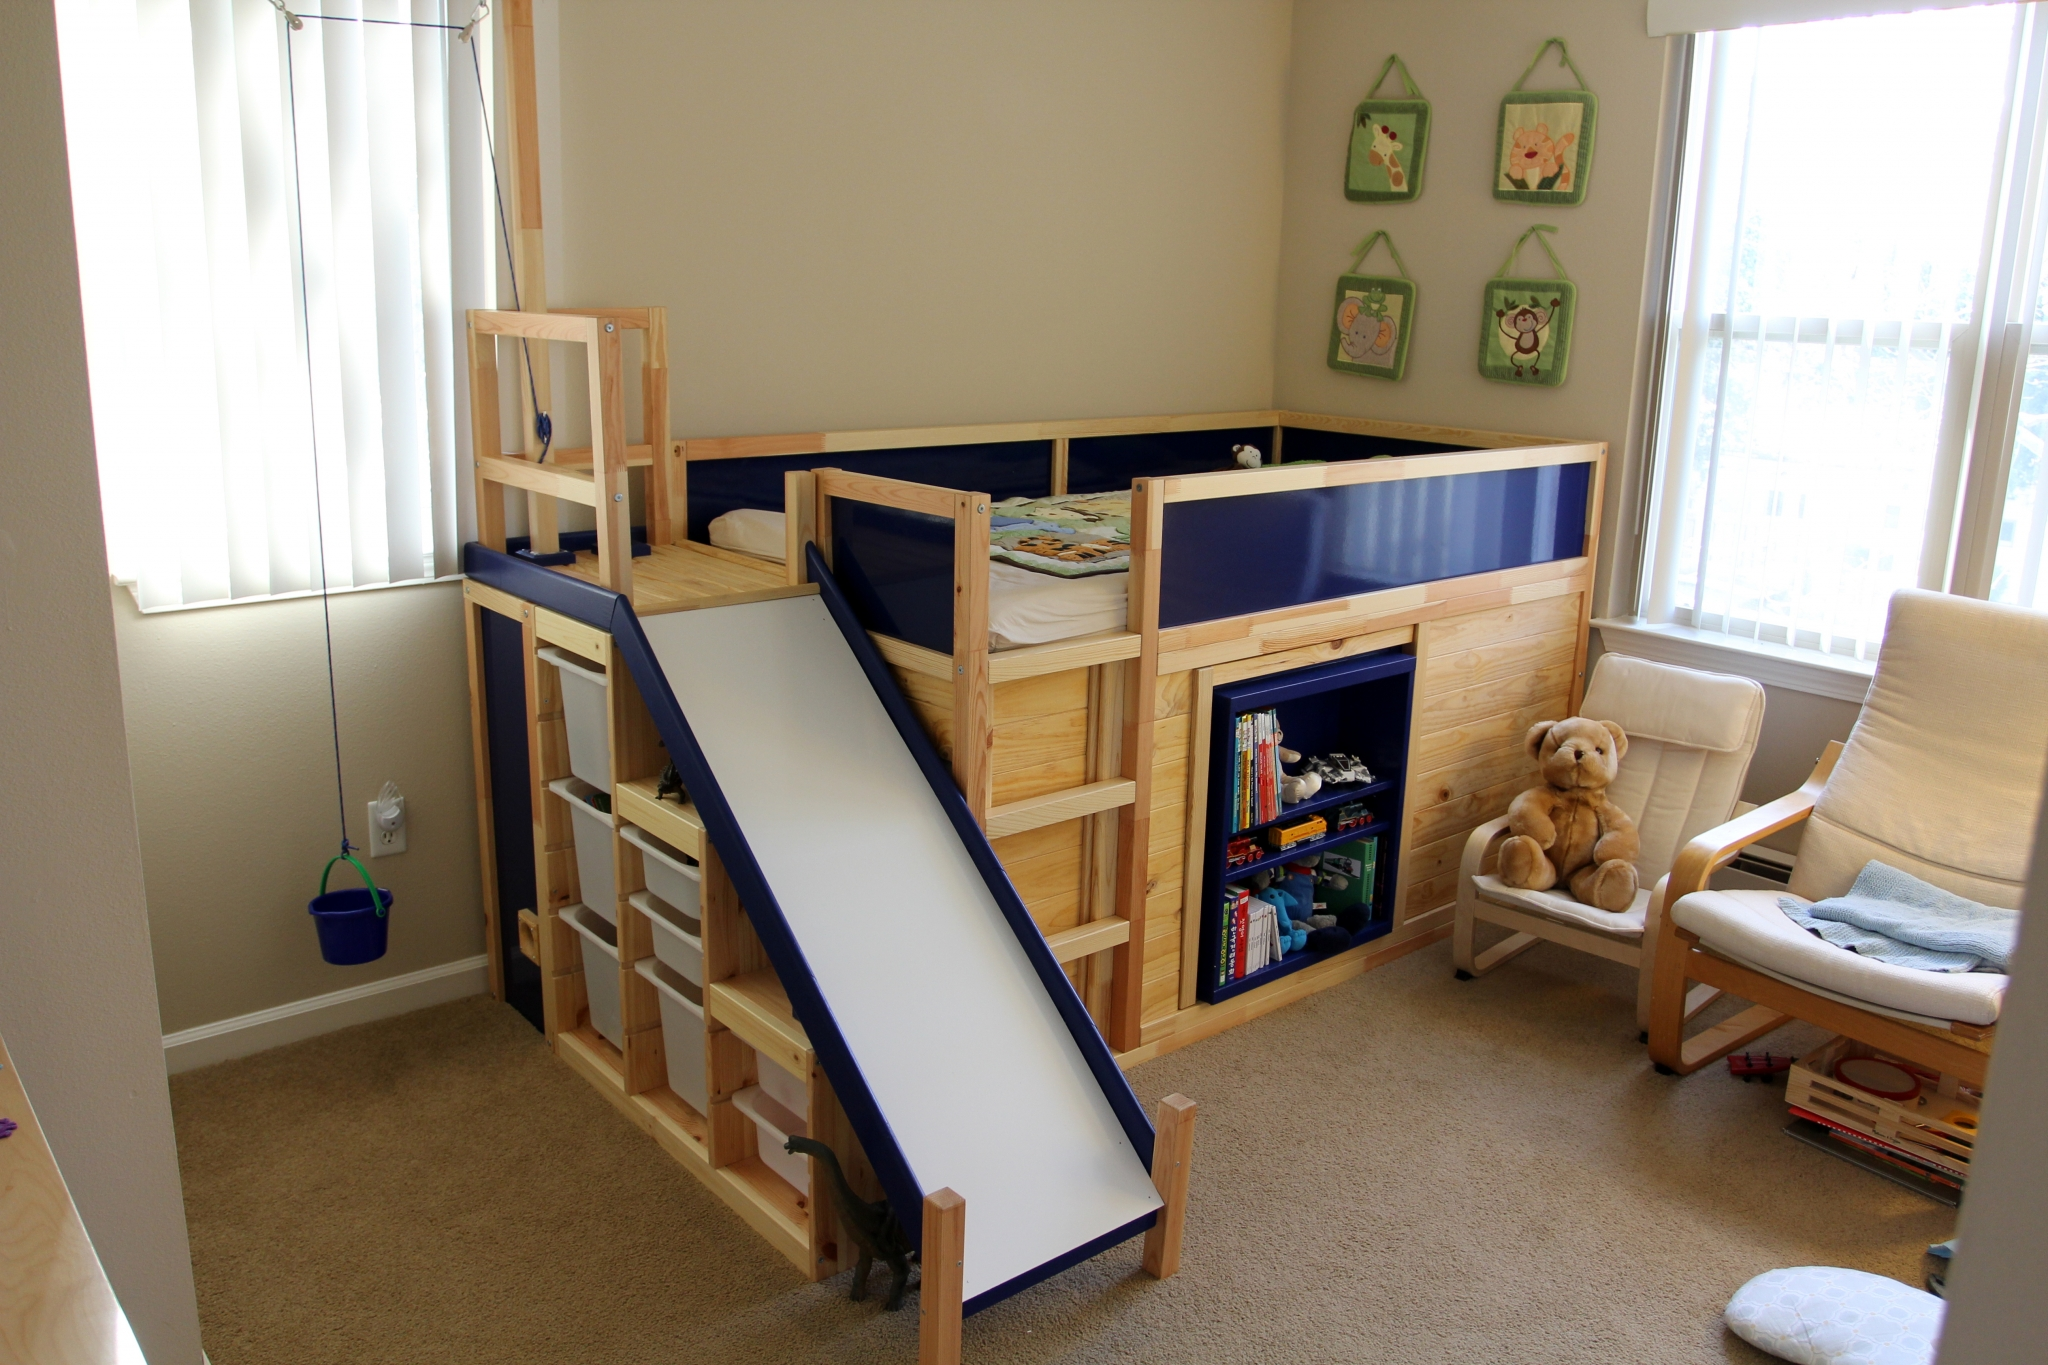 Fold Away Bed Ikea Learn How To Make An Awesome Kids Bed With Ikea Parts From A